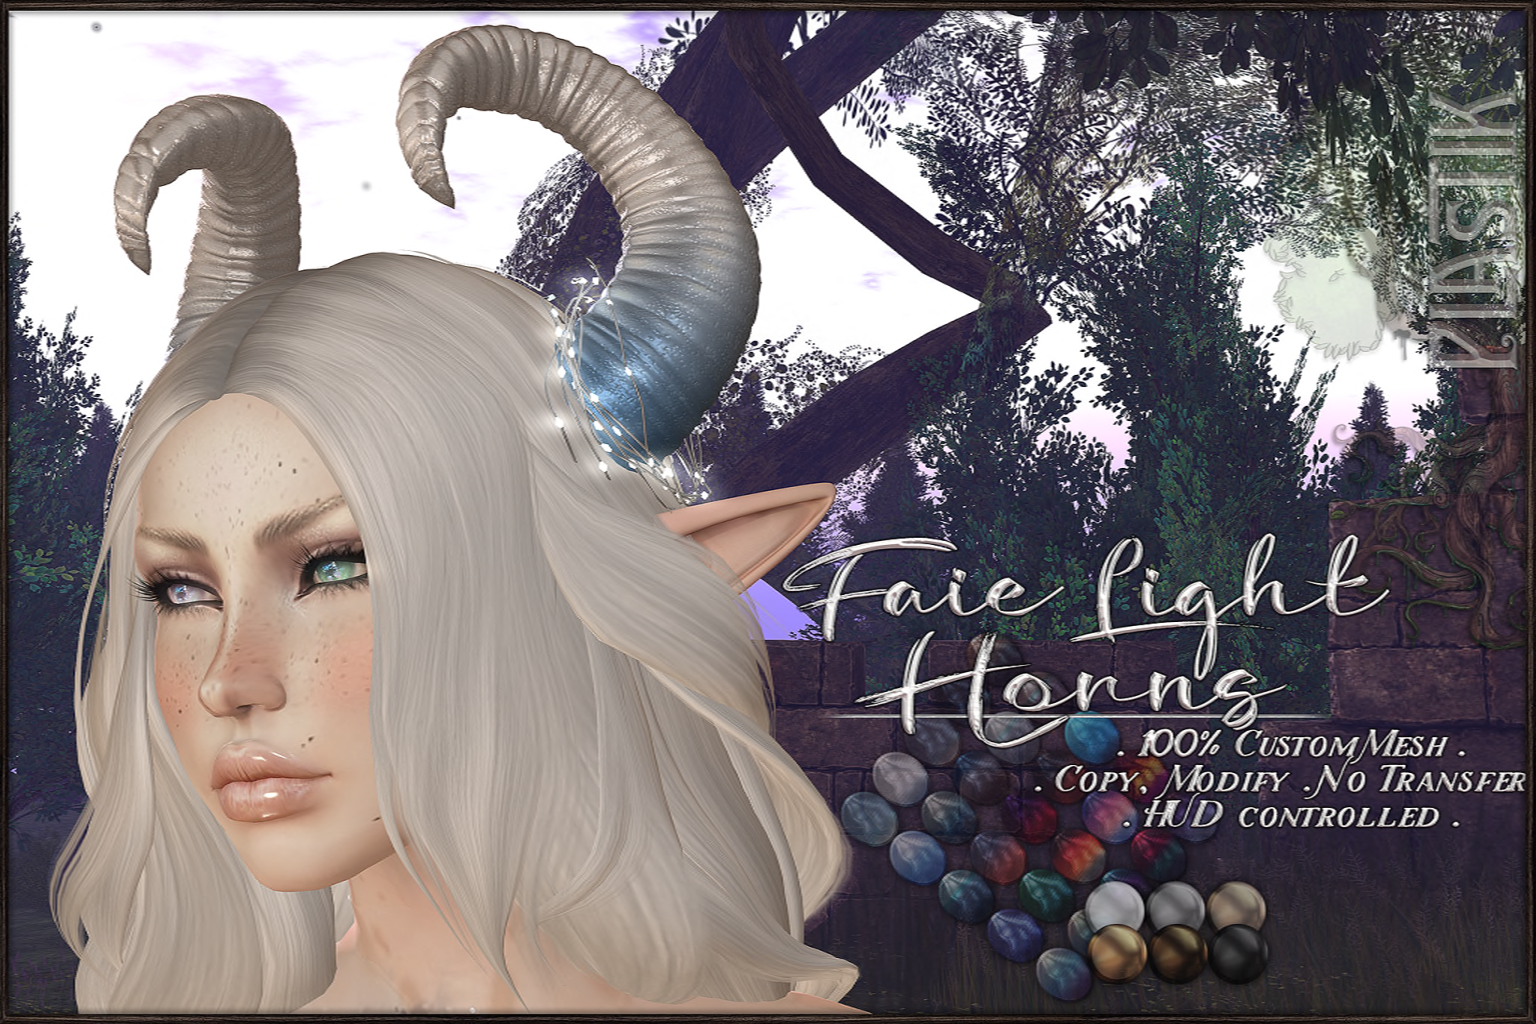 :[P]:- Faie Lighted Horns